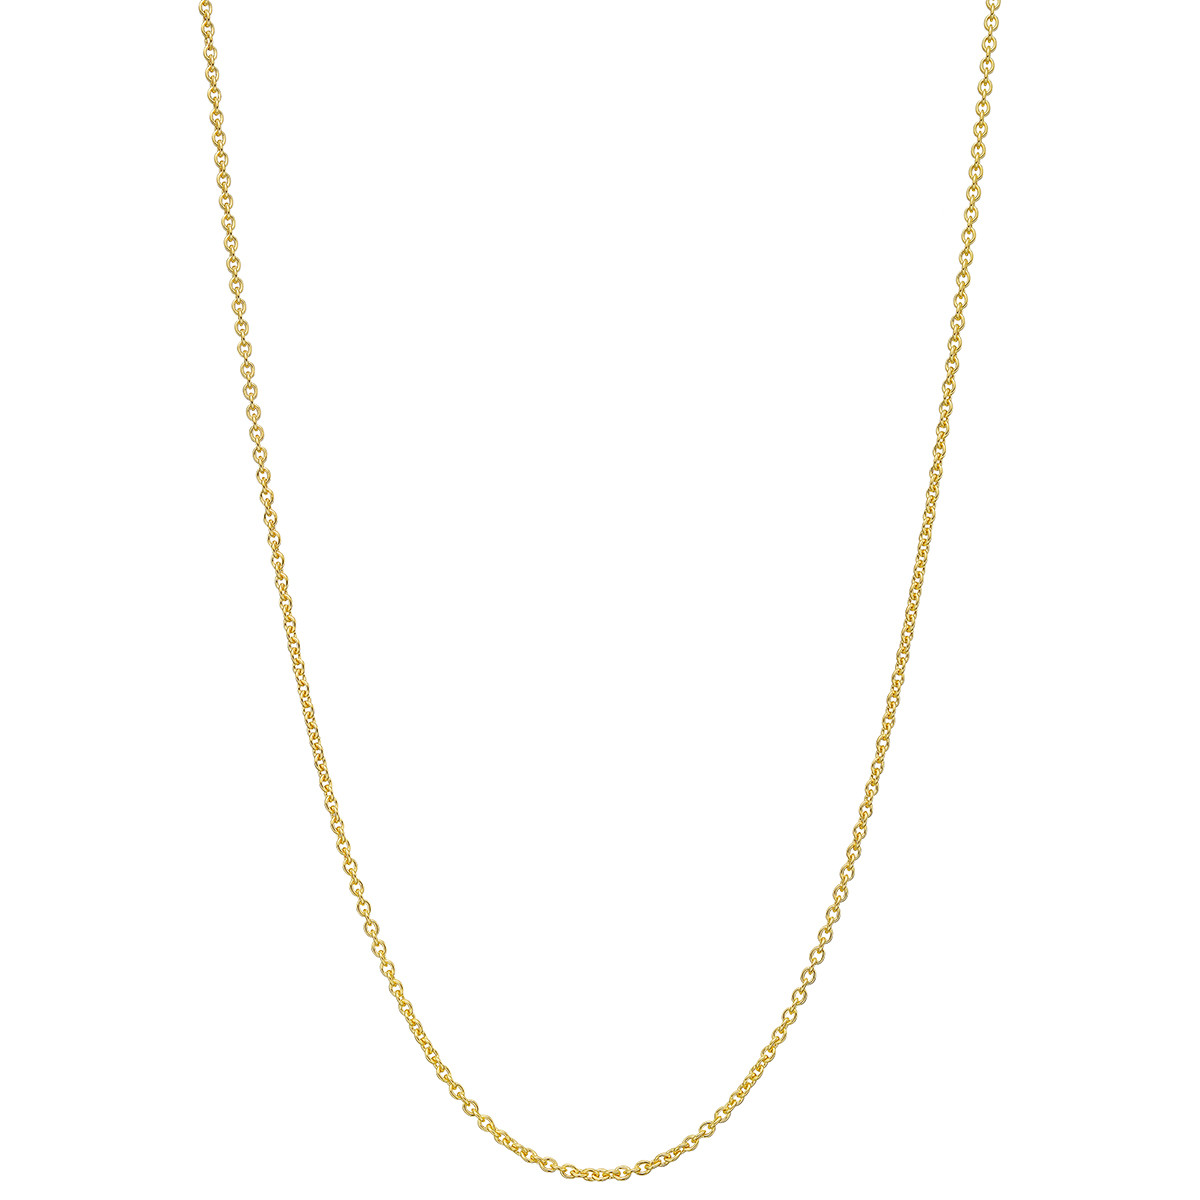 "18k Yellow Gold Thin Round Link Chain Necklace (18"")"